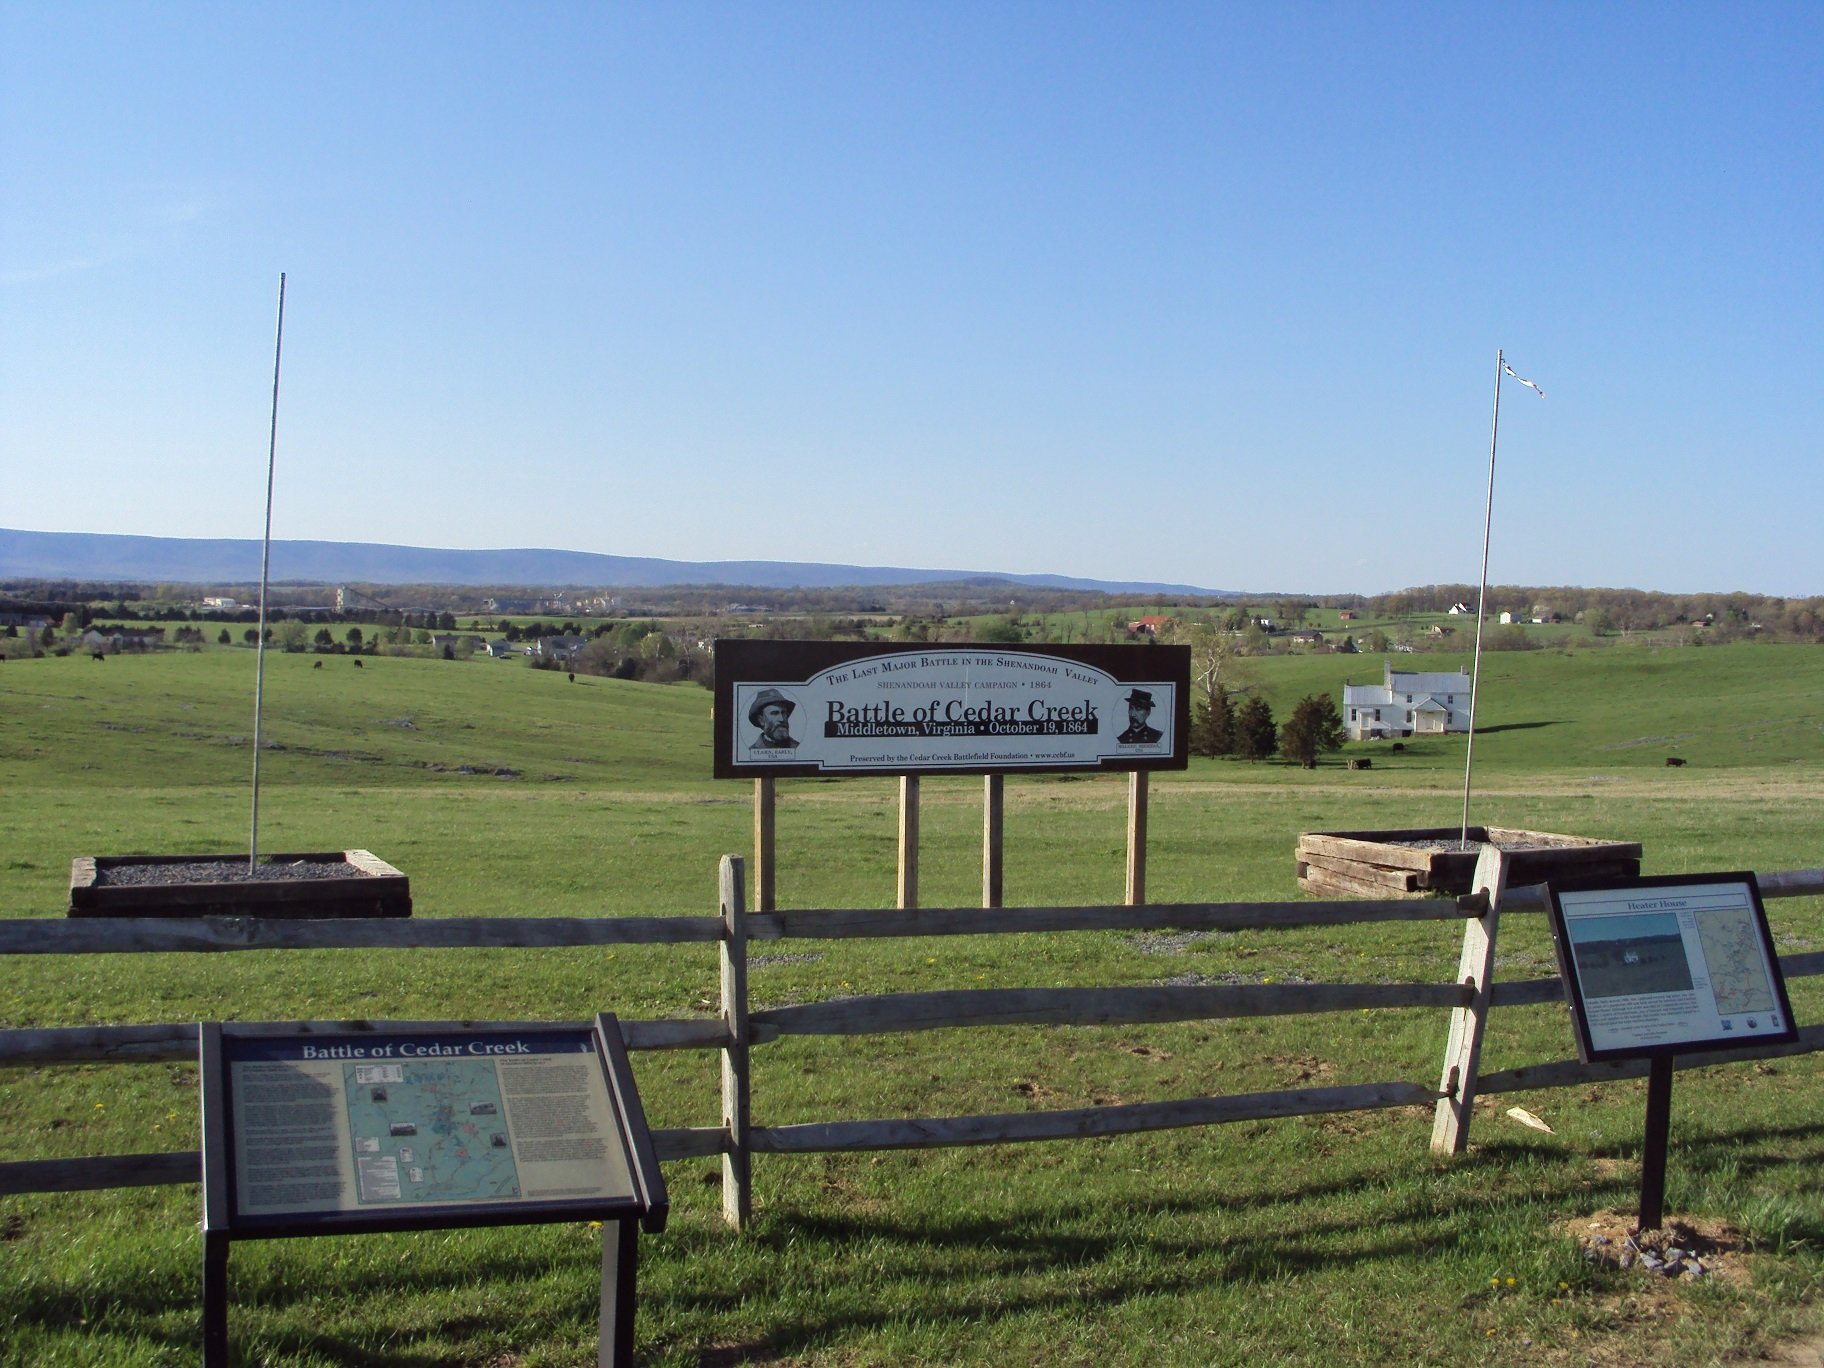 A view of the center of the Cedar Creek battlefield taken from the headquarters building which offers information and sponsors annual events.